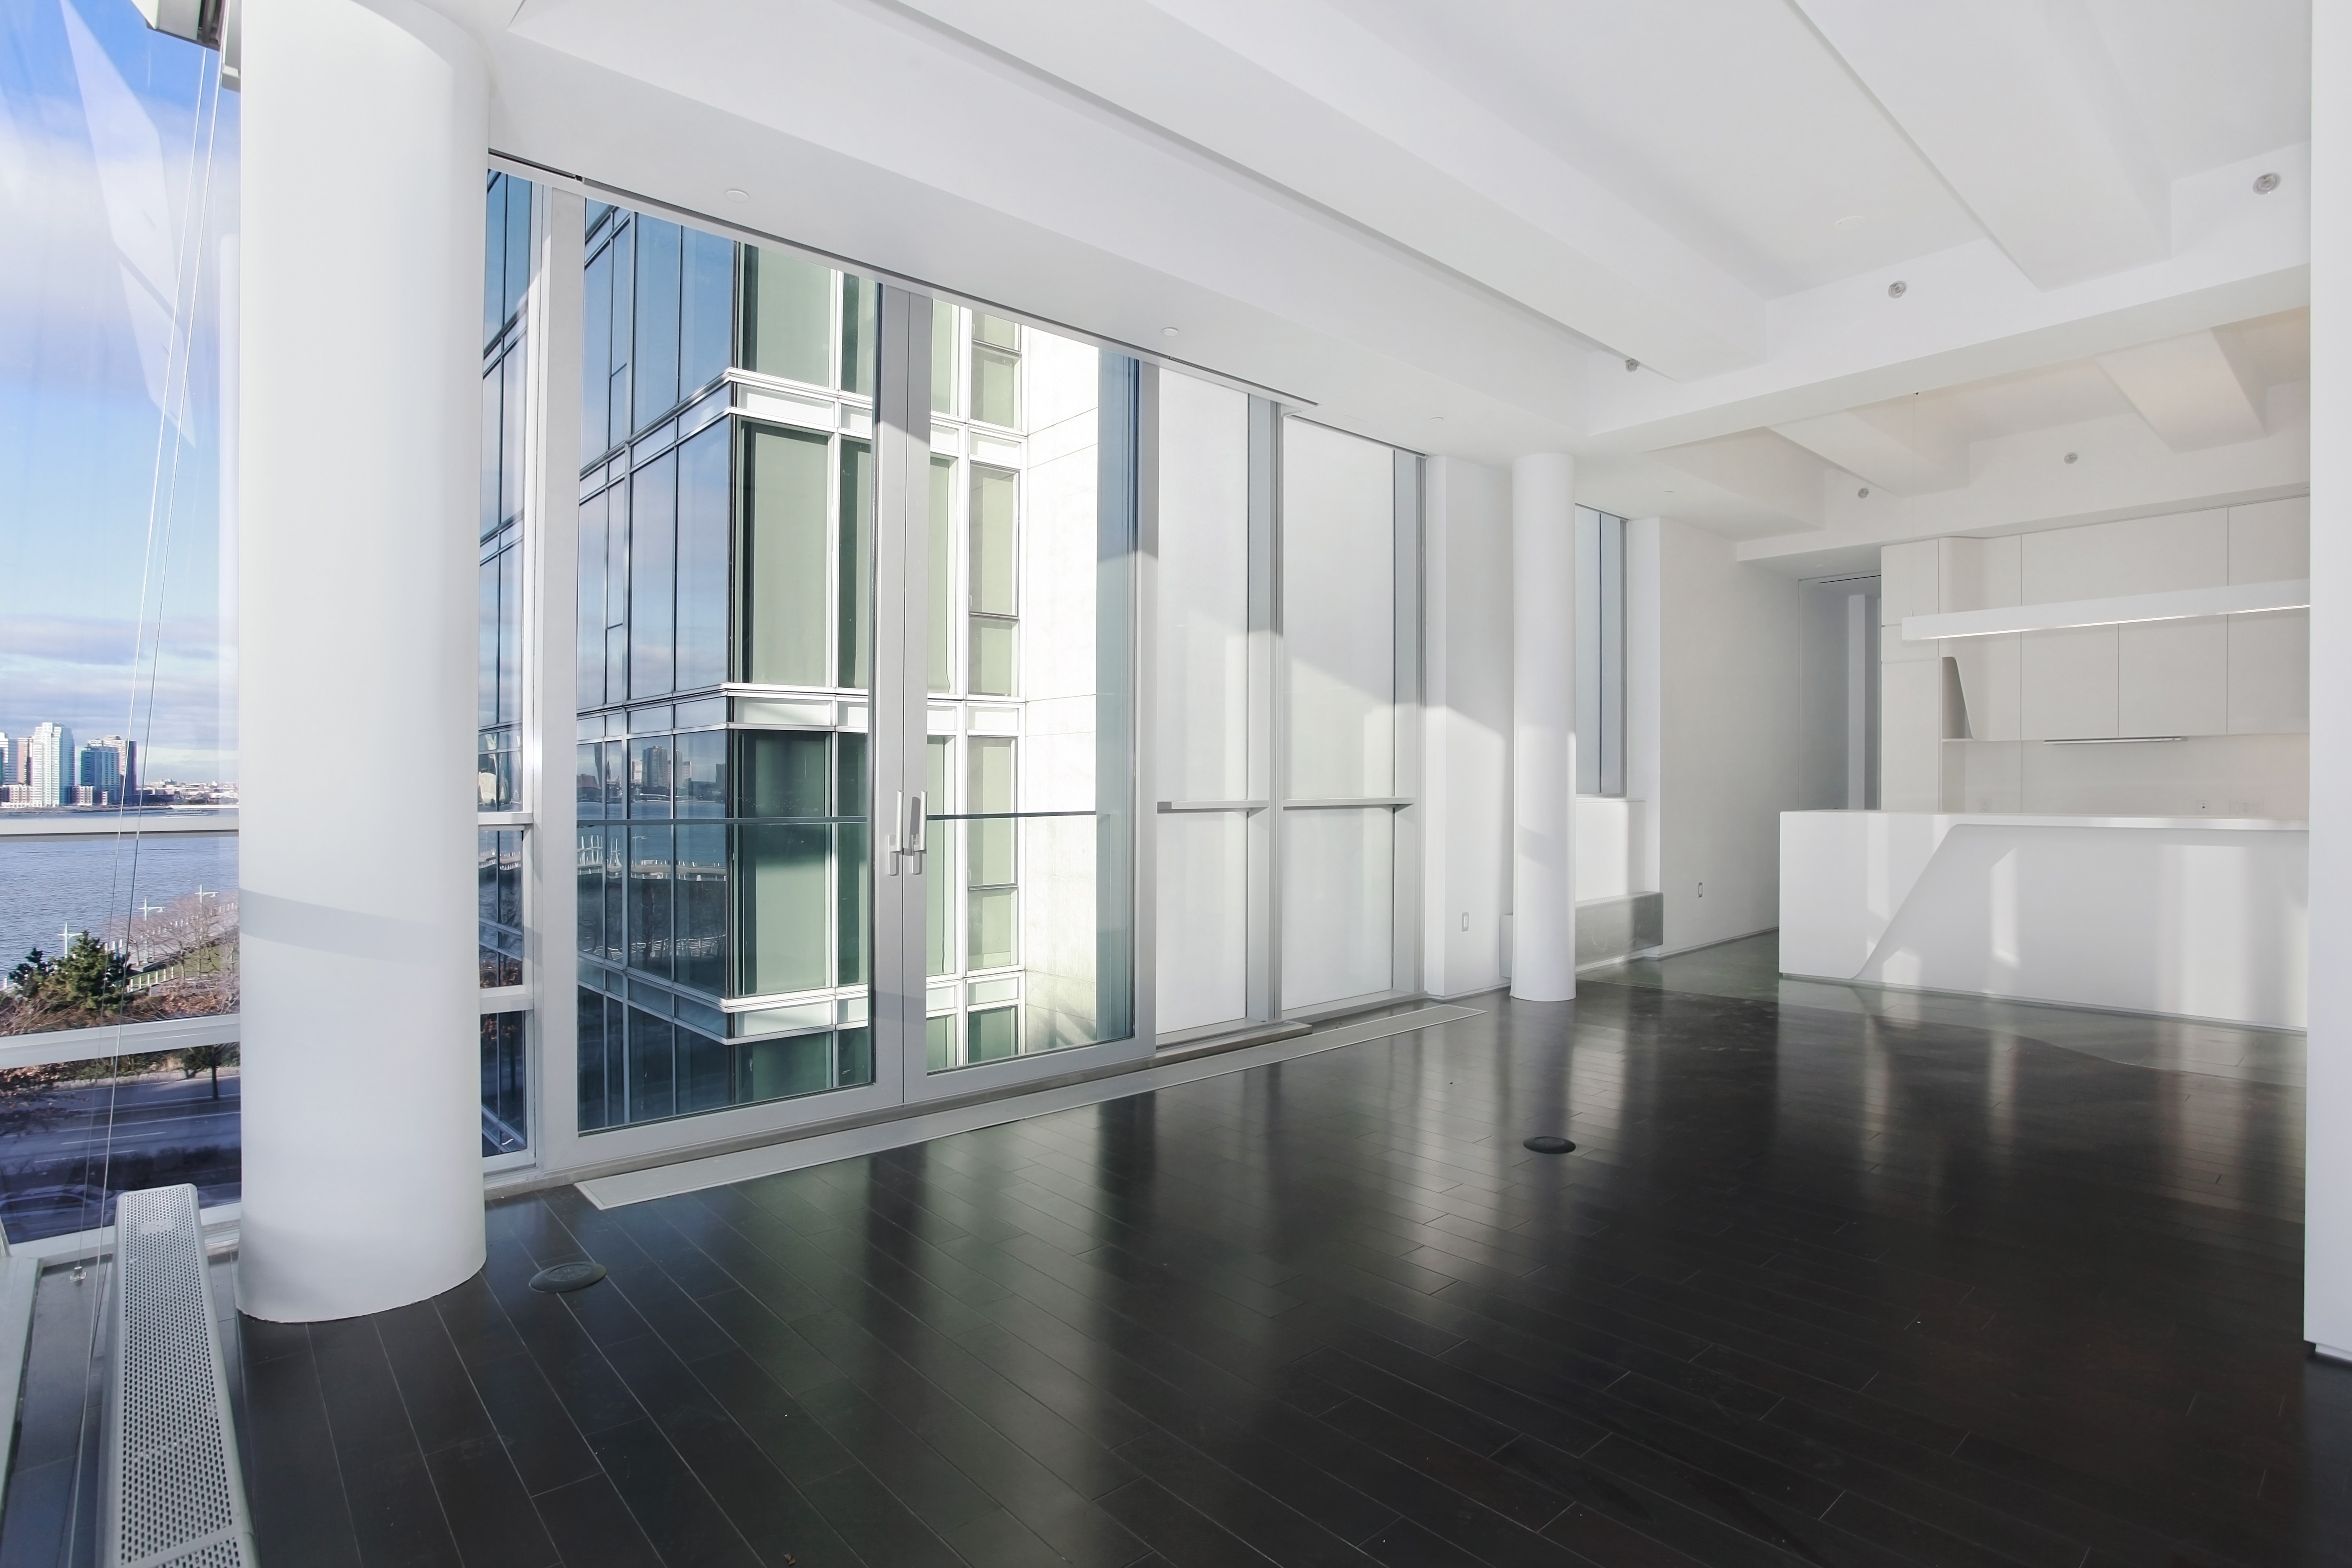 166 Perry Street - Magnificent corner 2 bed 2.5 Bath plus home office with direct Hudson River views.  5th floor is a unique floor in this building. It is the only floor with soaring, dramatic 12' beamed ceilings. The design and finishes are a masterpiece, a futuristic, loft/ artistic living. A place that most will remember. The living room has floor-to-ceiling glass walls facing South/West immersing the home with lights.  A grandly scaled West-facing wall of glass slides and opens creating an illusion of Juliet balcony to reveal the spectacular views and sunsets over the Hudson River. There is an open kitchen that includes Sub-Zero 700 series refrigerator drawers and under cabinet wine storage, Miele dishwasher, Corian countertops and honed Vermont green slate flooring. The kitchen features a large adjoining scullery/pantry. There is a separate Washer/ Dryer closet. A floor-to-ceiling pocket door separates the 2nd bedroom from the living room. Here you will find an en suite bath with molded Corian vanity countertop and sink honed Vermont green slate floors and an acid etched blue glass entry door. Very generous Master Bedroom with 2 closets wenge wood flooring and floor- to-ceiling windows with southern exposure. The five fixture master bath is graciously appointed with custom- designed vanity sculpted Corian soaking tub and shower each with Dornbracht Tara Classic polished chrome fixtures and slate floor with radiant heat.The building was built in 2008 Designed by Asymptote Architects, the expansive apartment is located in a full service condominium with a 24-hour doorman. The boutique-sized building is just moments from the superb Hudson River Park with only 16 residences features a newly renovated lobby, further customized by celebrated NYC designer, Laura Kirar. The neighborhood is considered the most desirable of all with its refined collection of boutiques and restaurants dotted throughout some of the most picturesque tree-lined cobbled streets. The building 